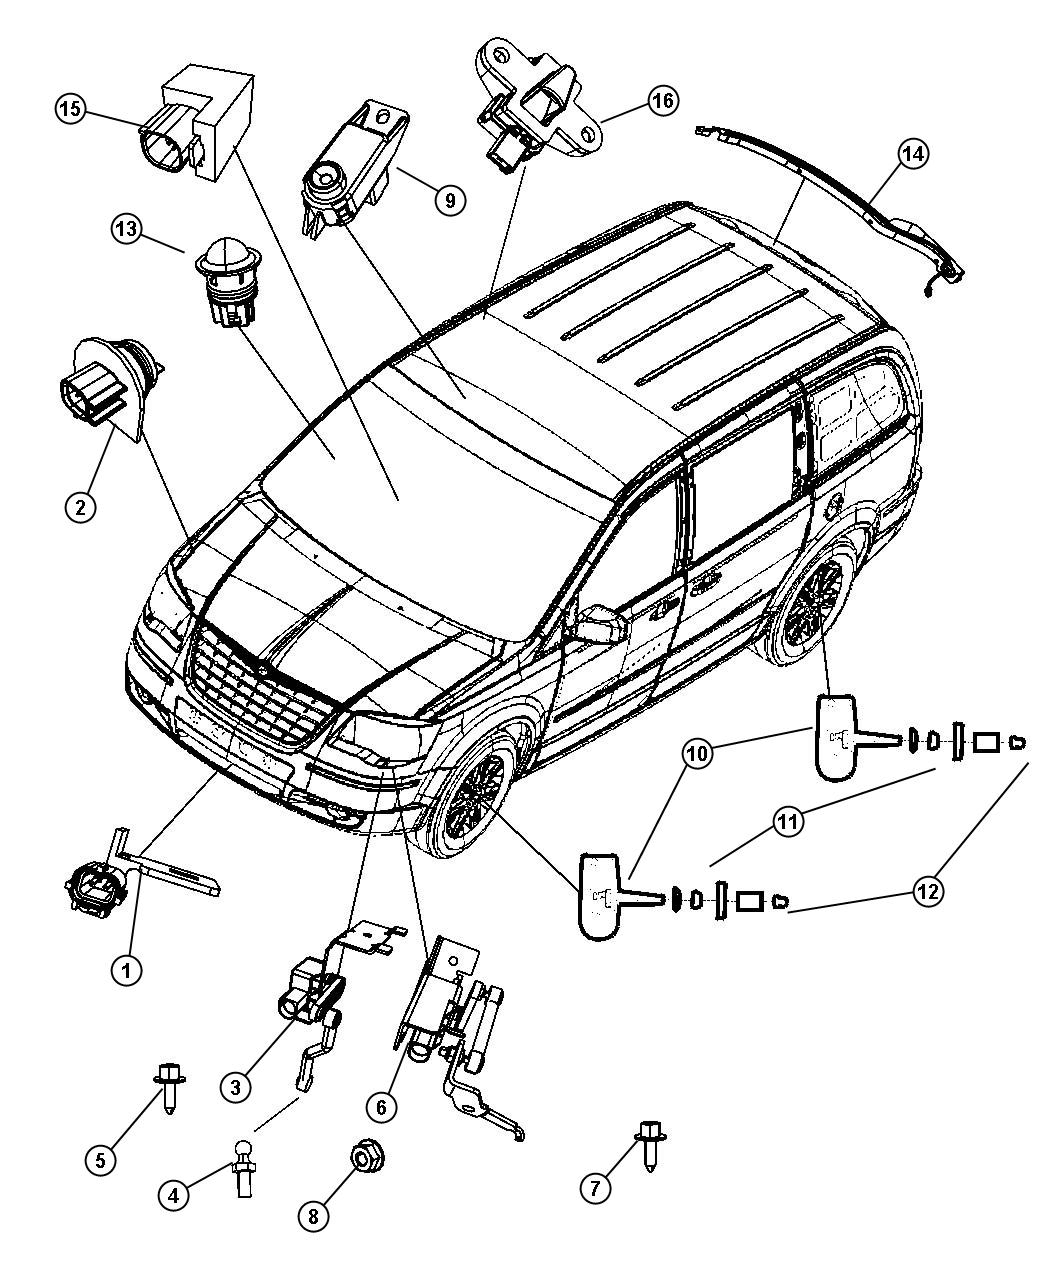 chrysler town and country parts diagram control wiring of apfc panel 2008 automotive